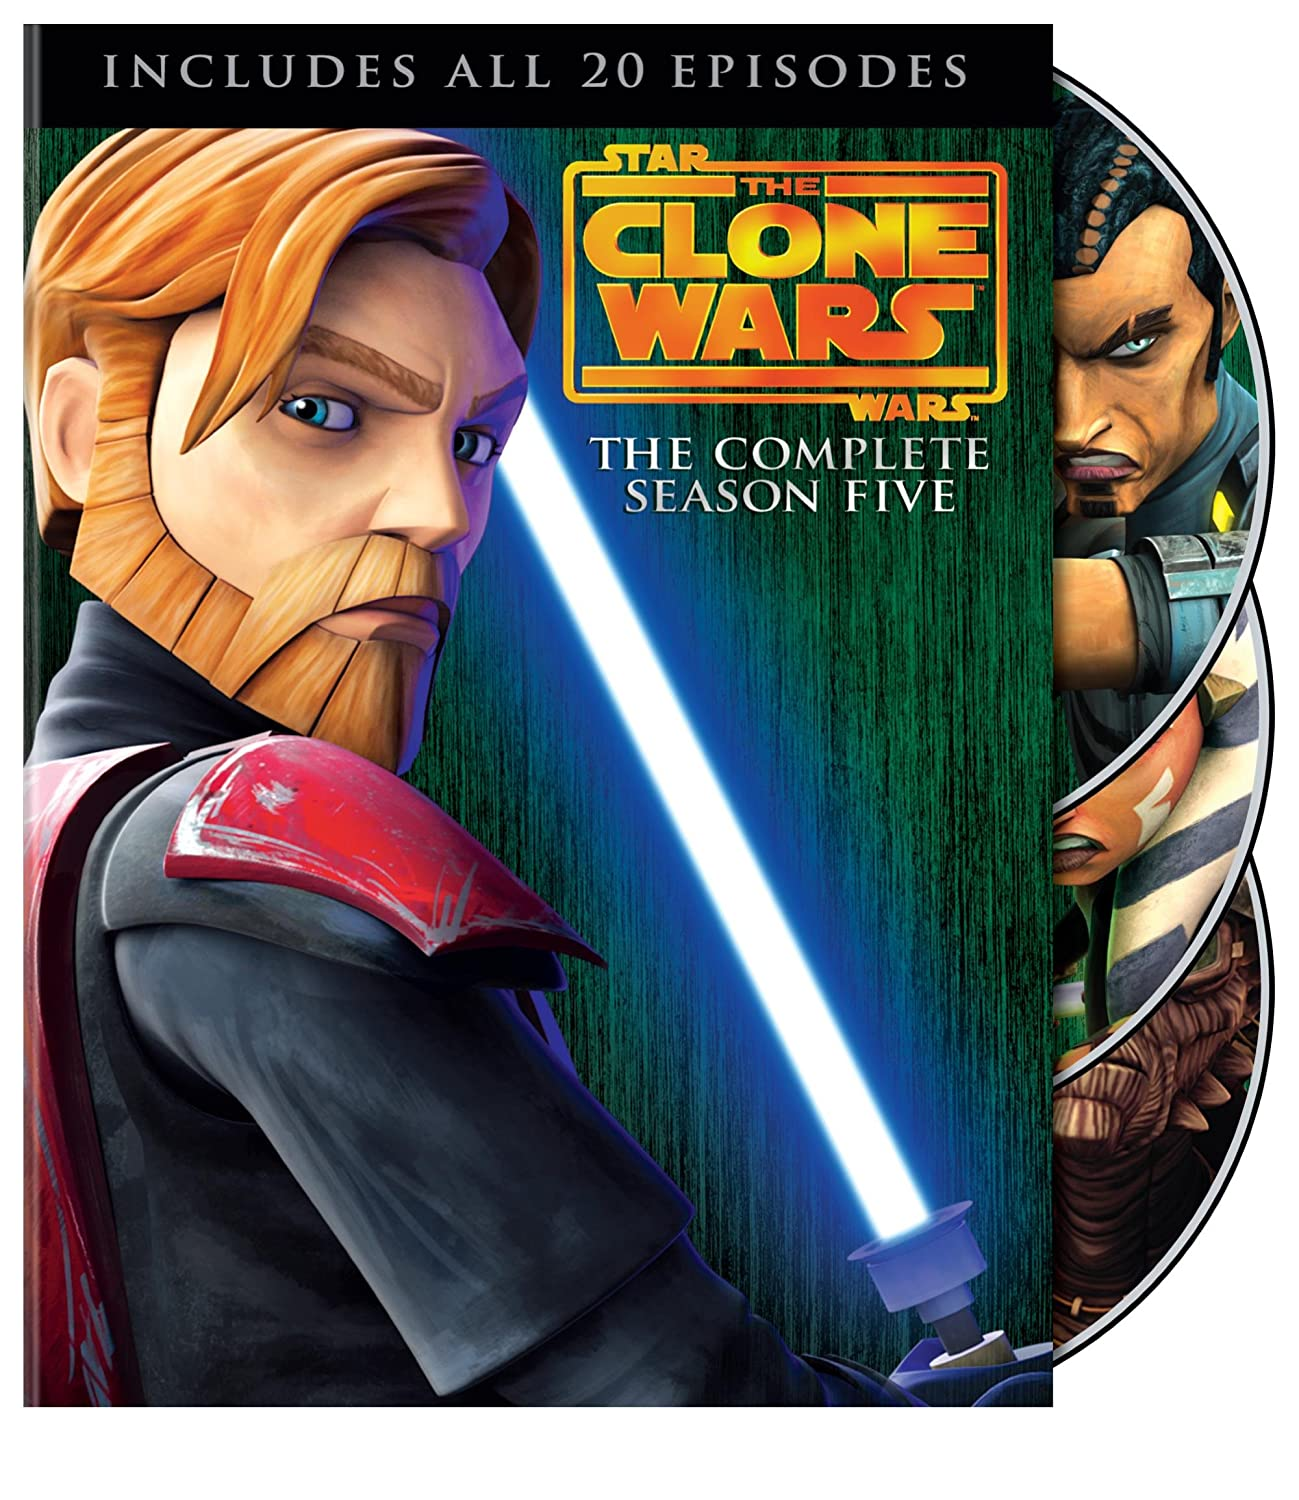 Clone Wars Season 5 Cover Art